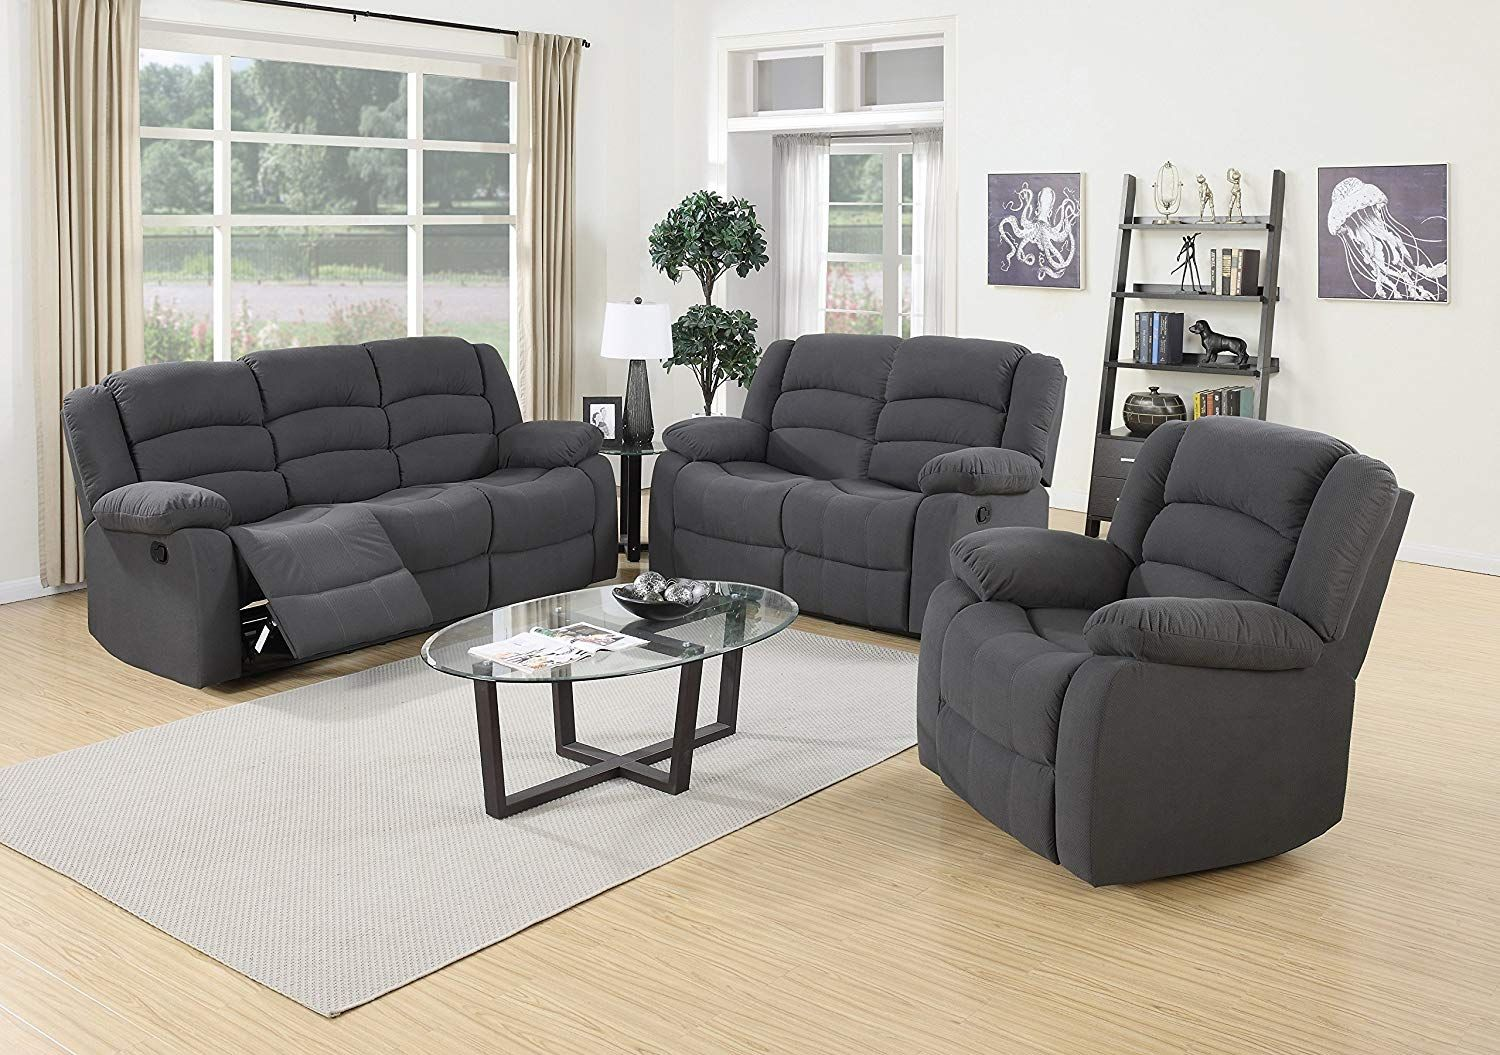 Us Pride Furniture 3 Piece Grey Fabric Reclining Sofa Loveseat Chair Set With Images 3 Piece Living Room Set Blue Grey Living Room Living Room Suite